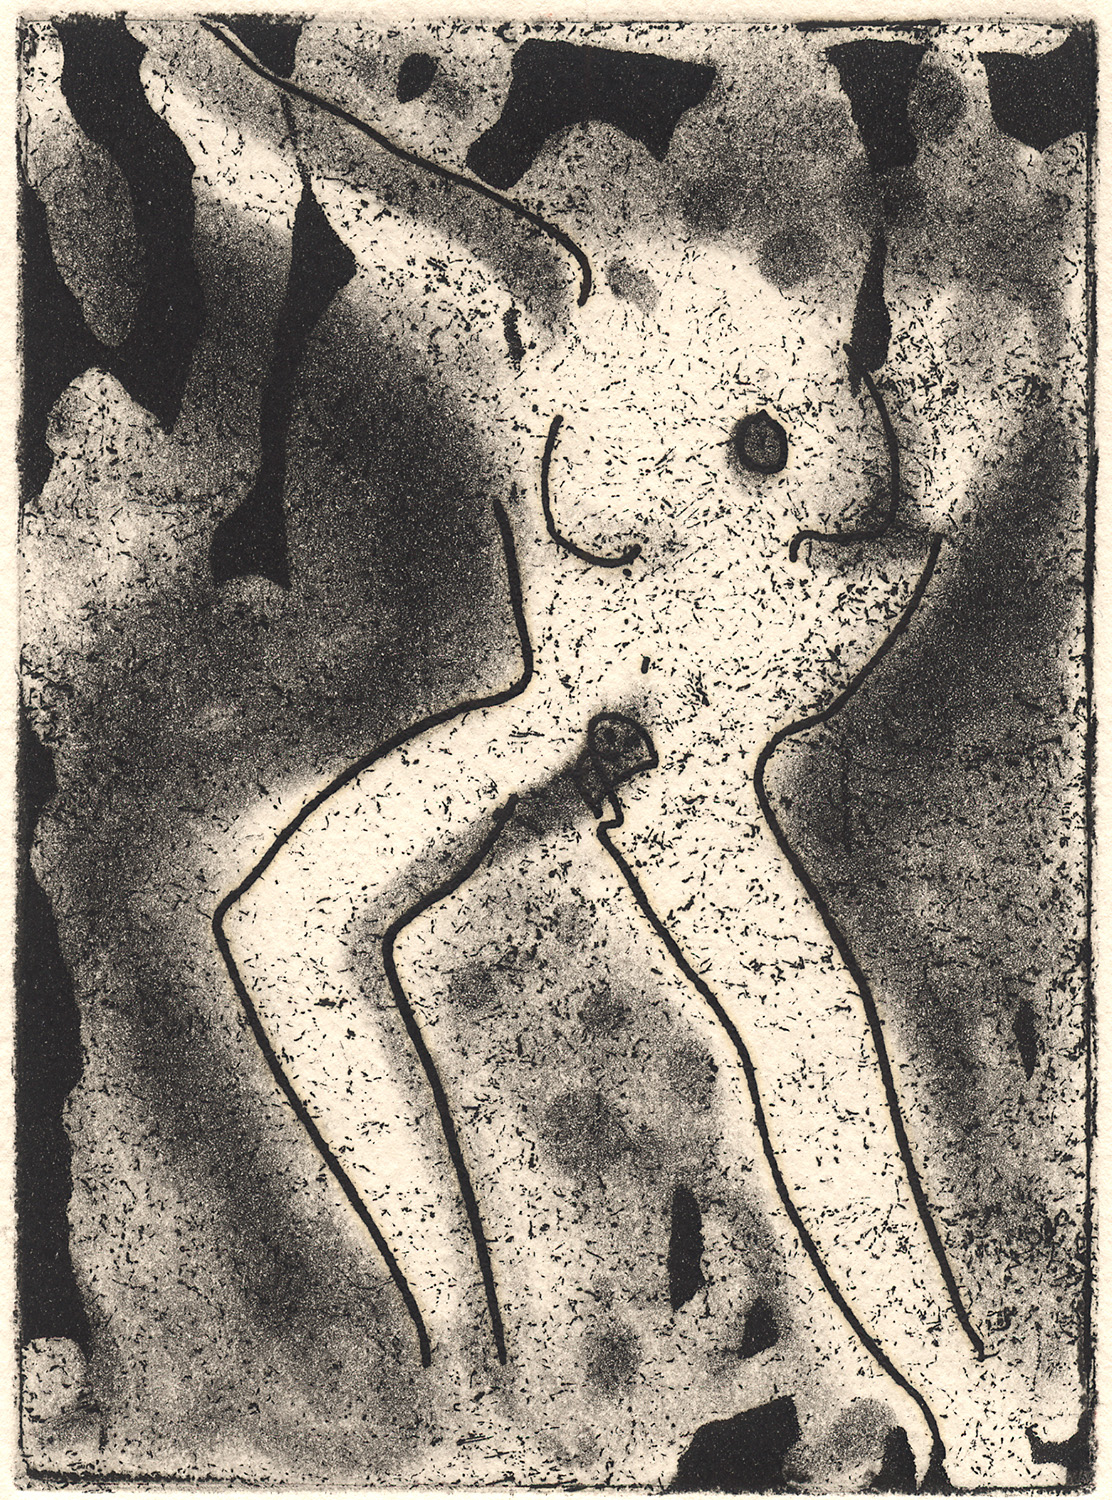 Indira-Cesarine-Portrait-of-a-Girl-No-2-Intaglio-Ink-on-Rag-Paper-The-Sappho-Series-1993.jpg